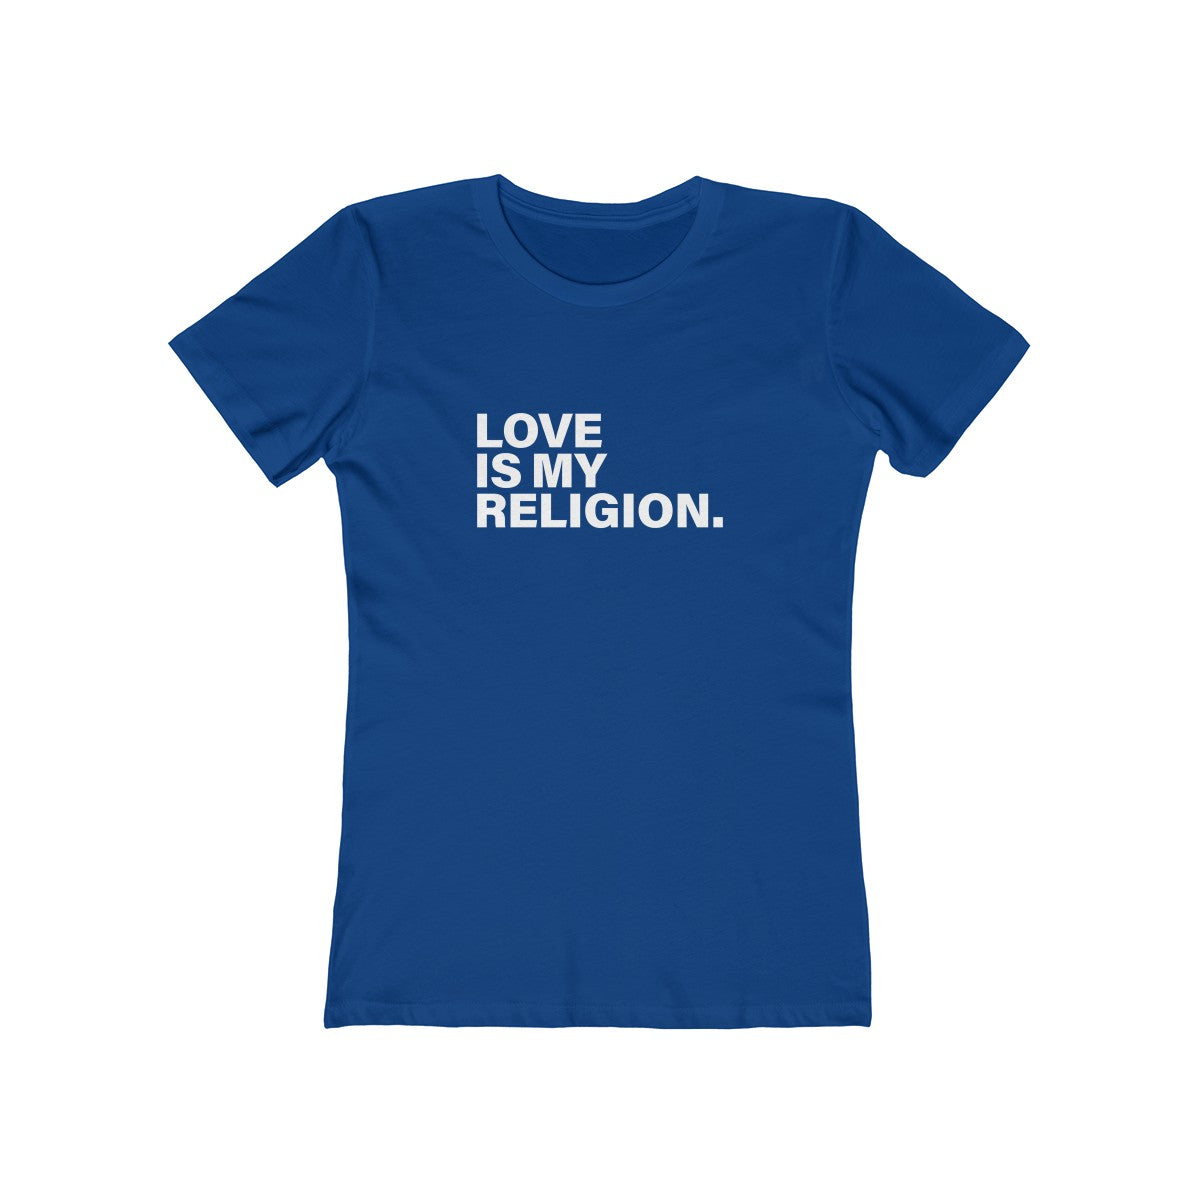 Love Is My Religion Women's The Boyfriend Tee - DARK COLORS